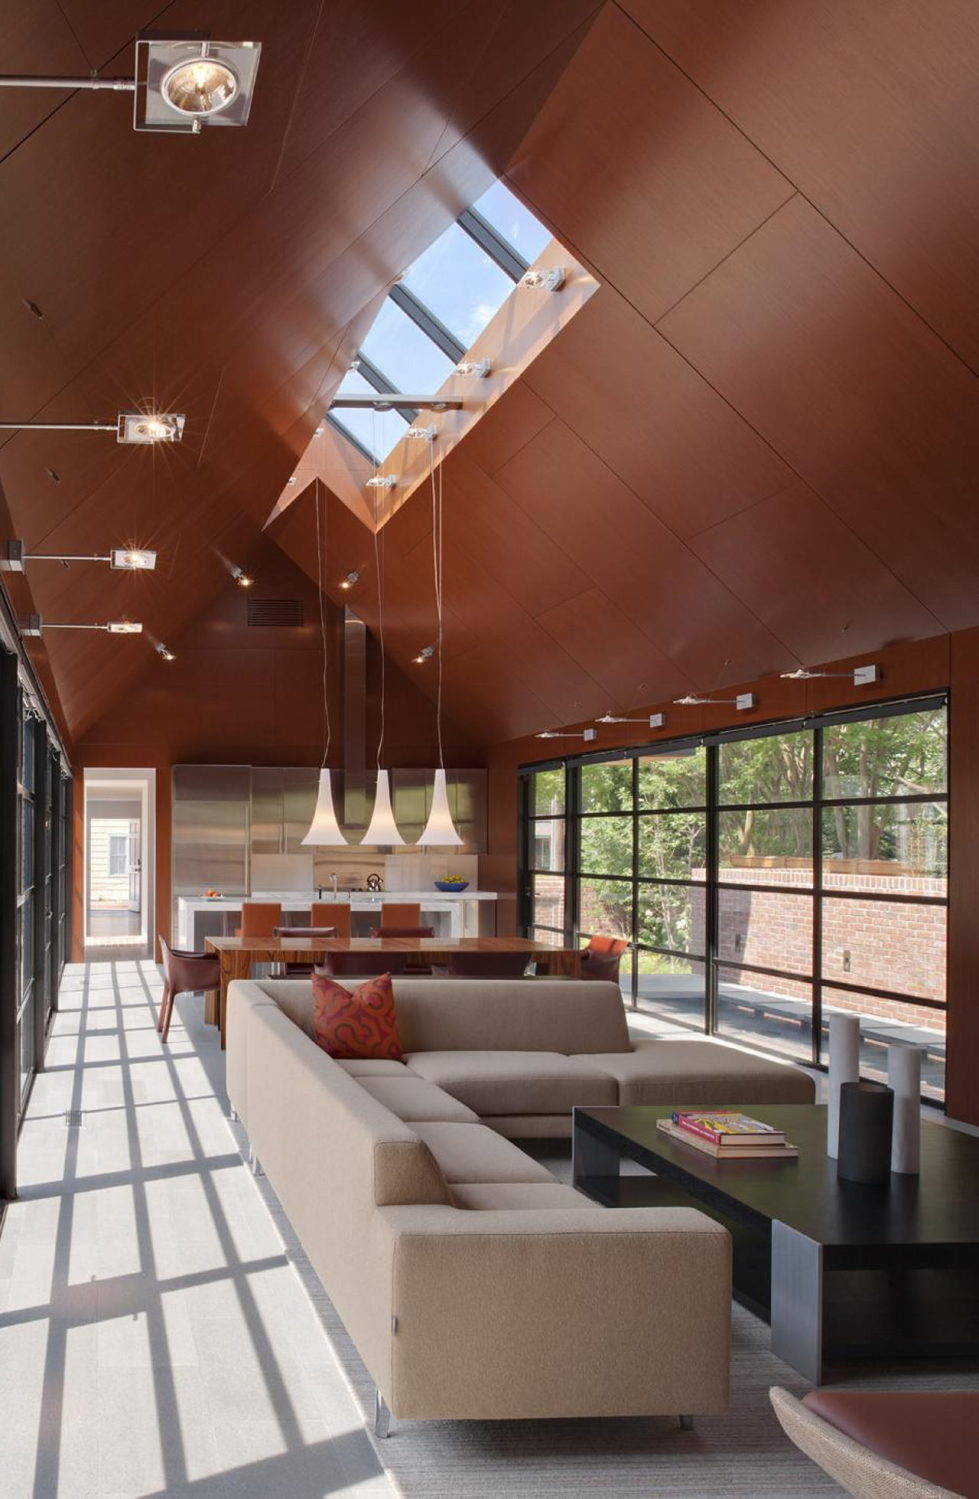 Renovation Of The Historical House From Robert M. Gurney Architect Studio 7